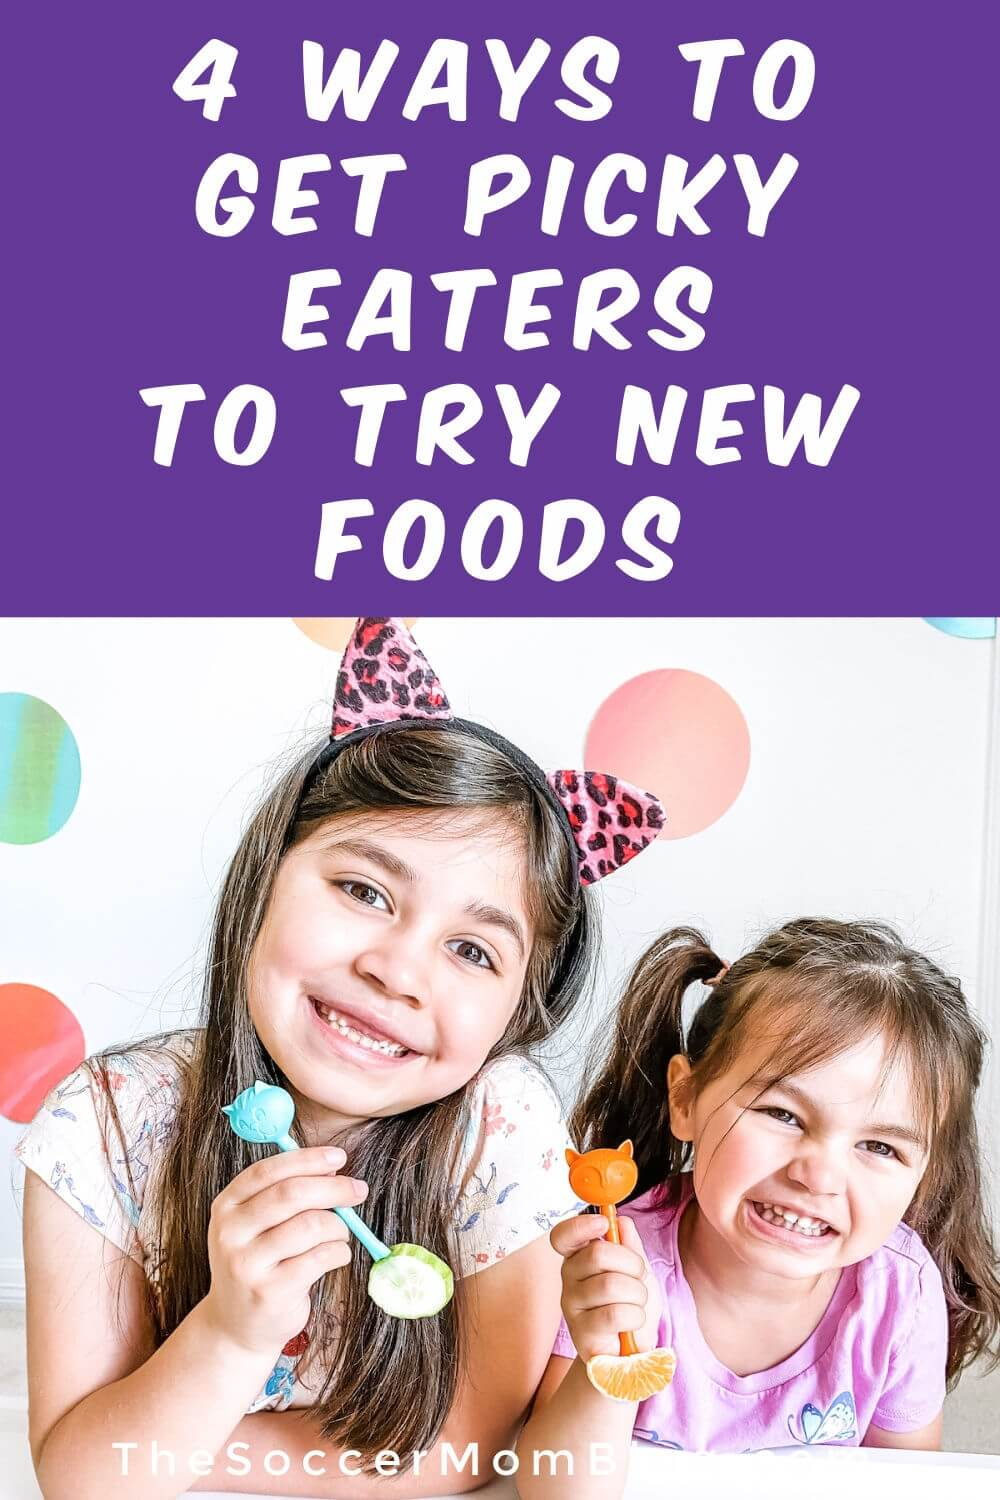 """little girls eating a snack; text overlay """"4 Ways to Get Picky Eaters to Try New Foods"""""""